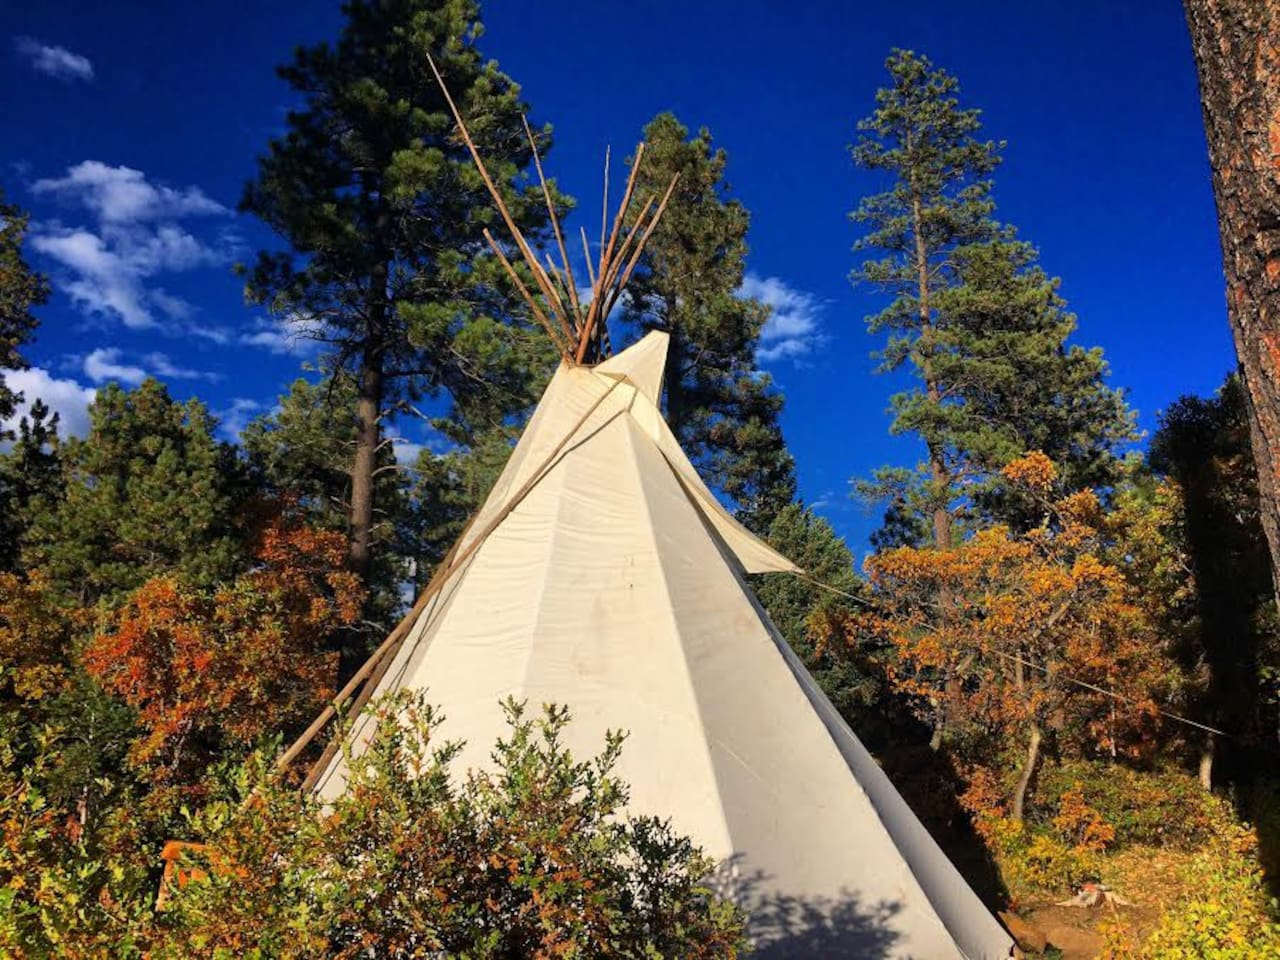 """The tipi is a serene place to stay. Of course this is considered """"Glamping"""" So the weather can impact your stay. But on cold days or nights with a central fire, you can enjoy the serenity of the circular tipi."""